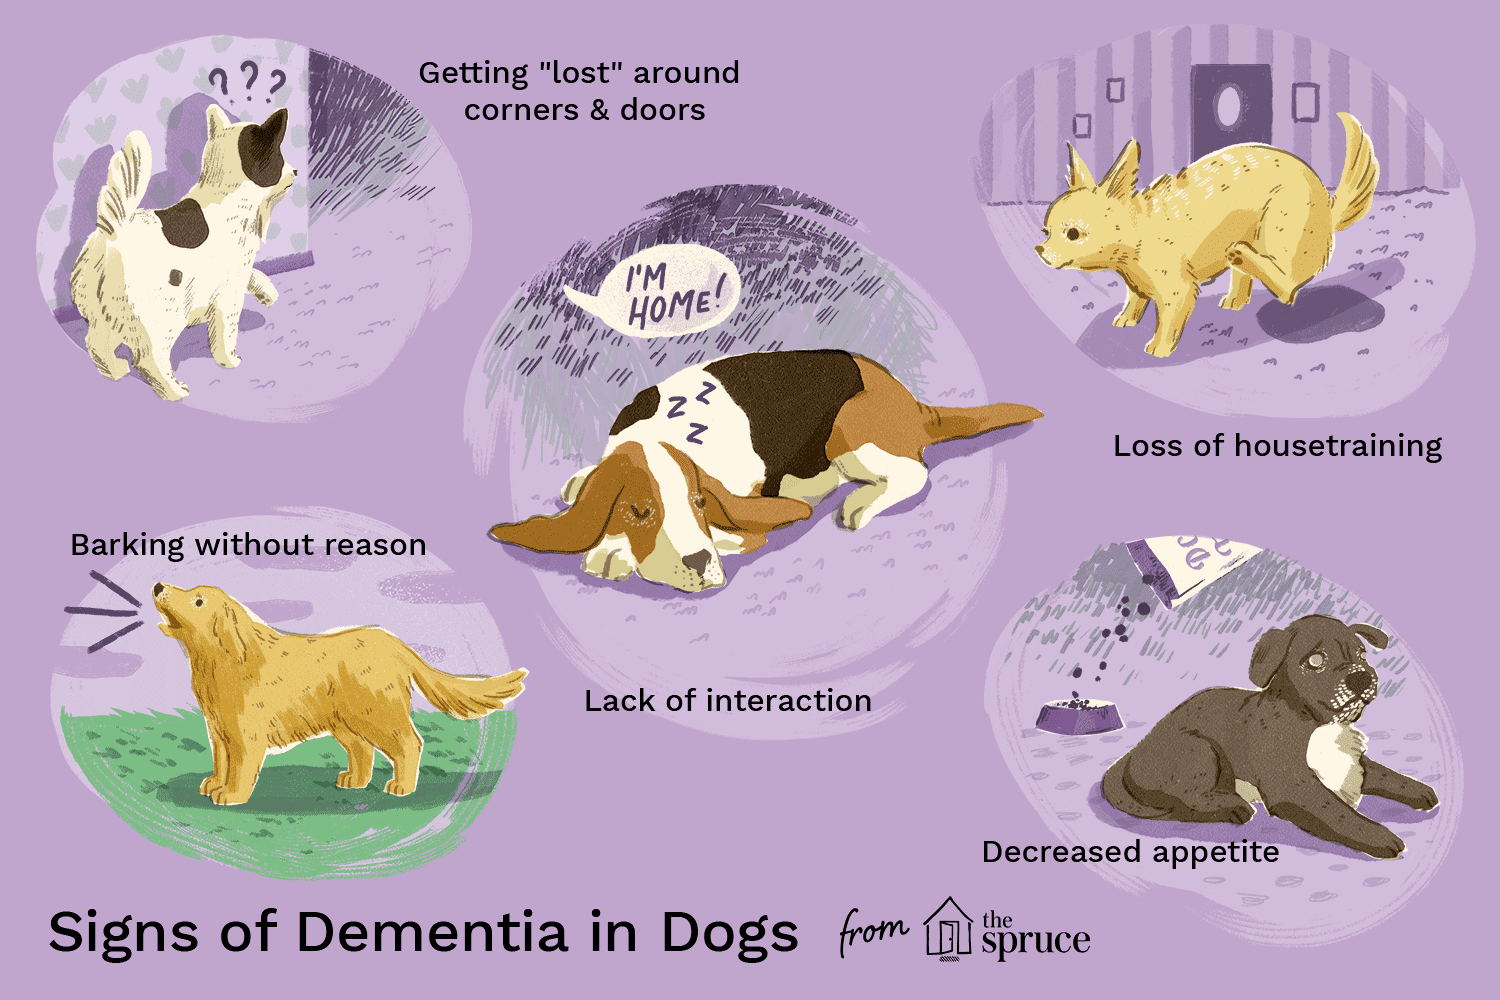 illustration of signs of dementia in dogs